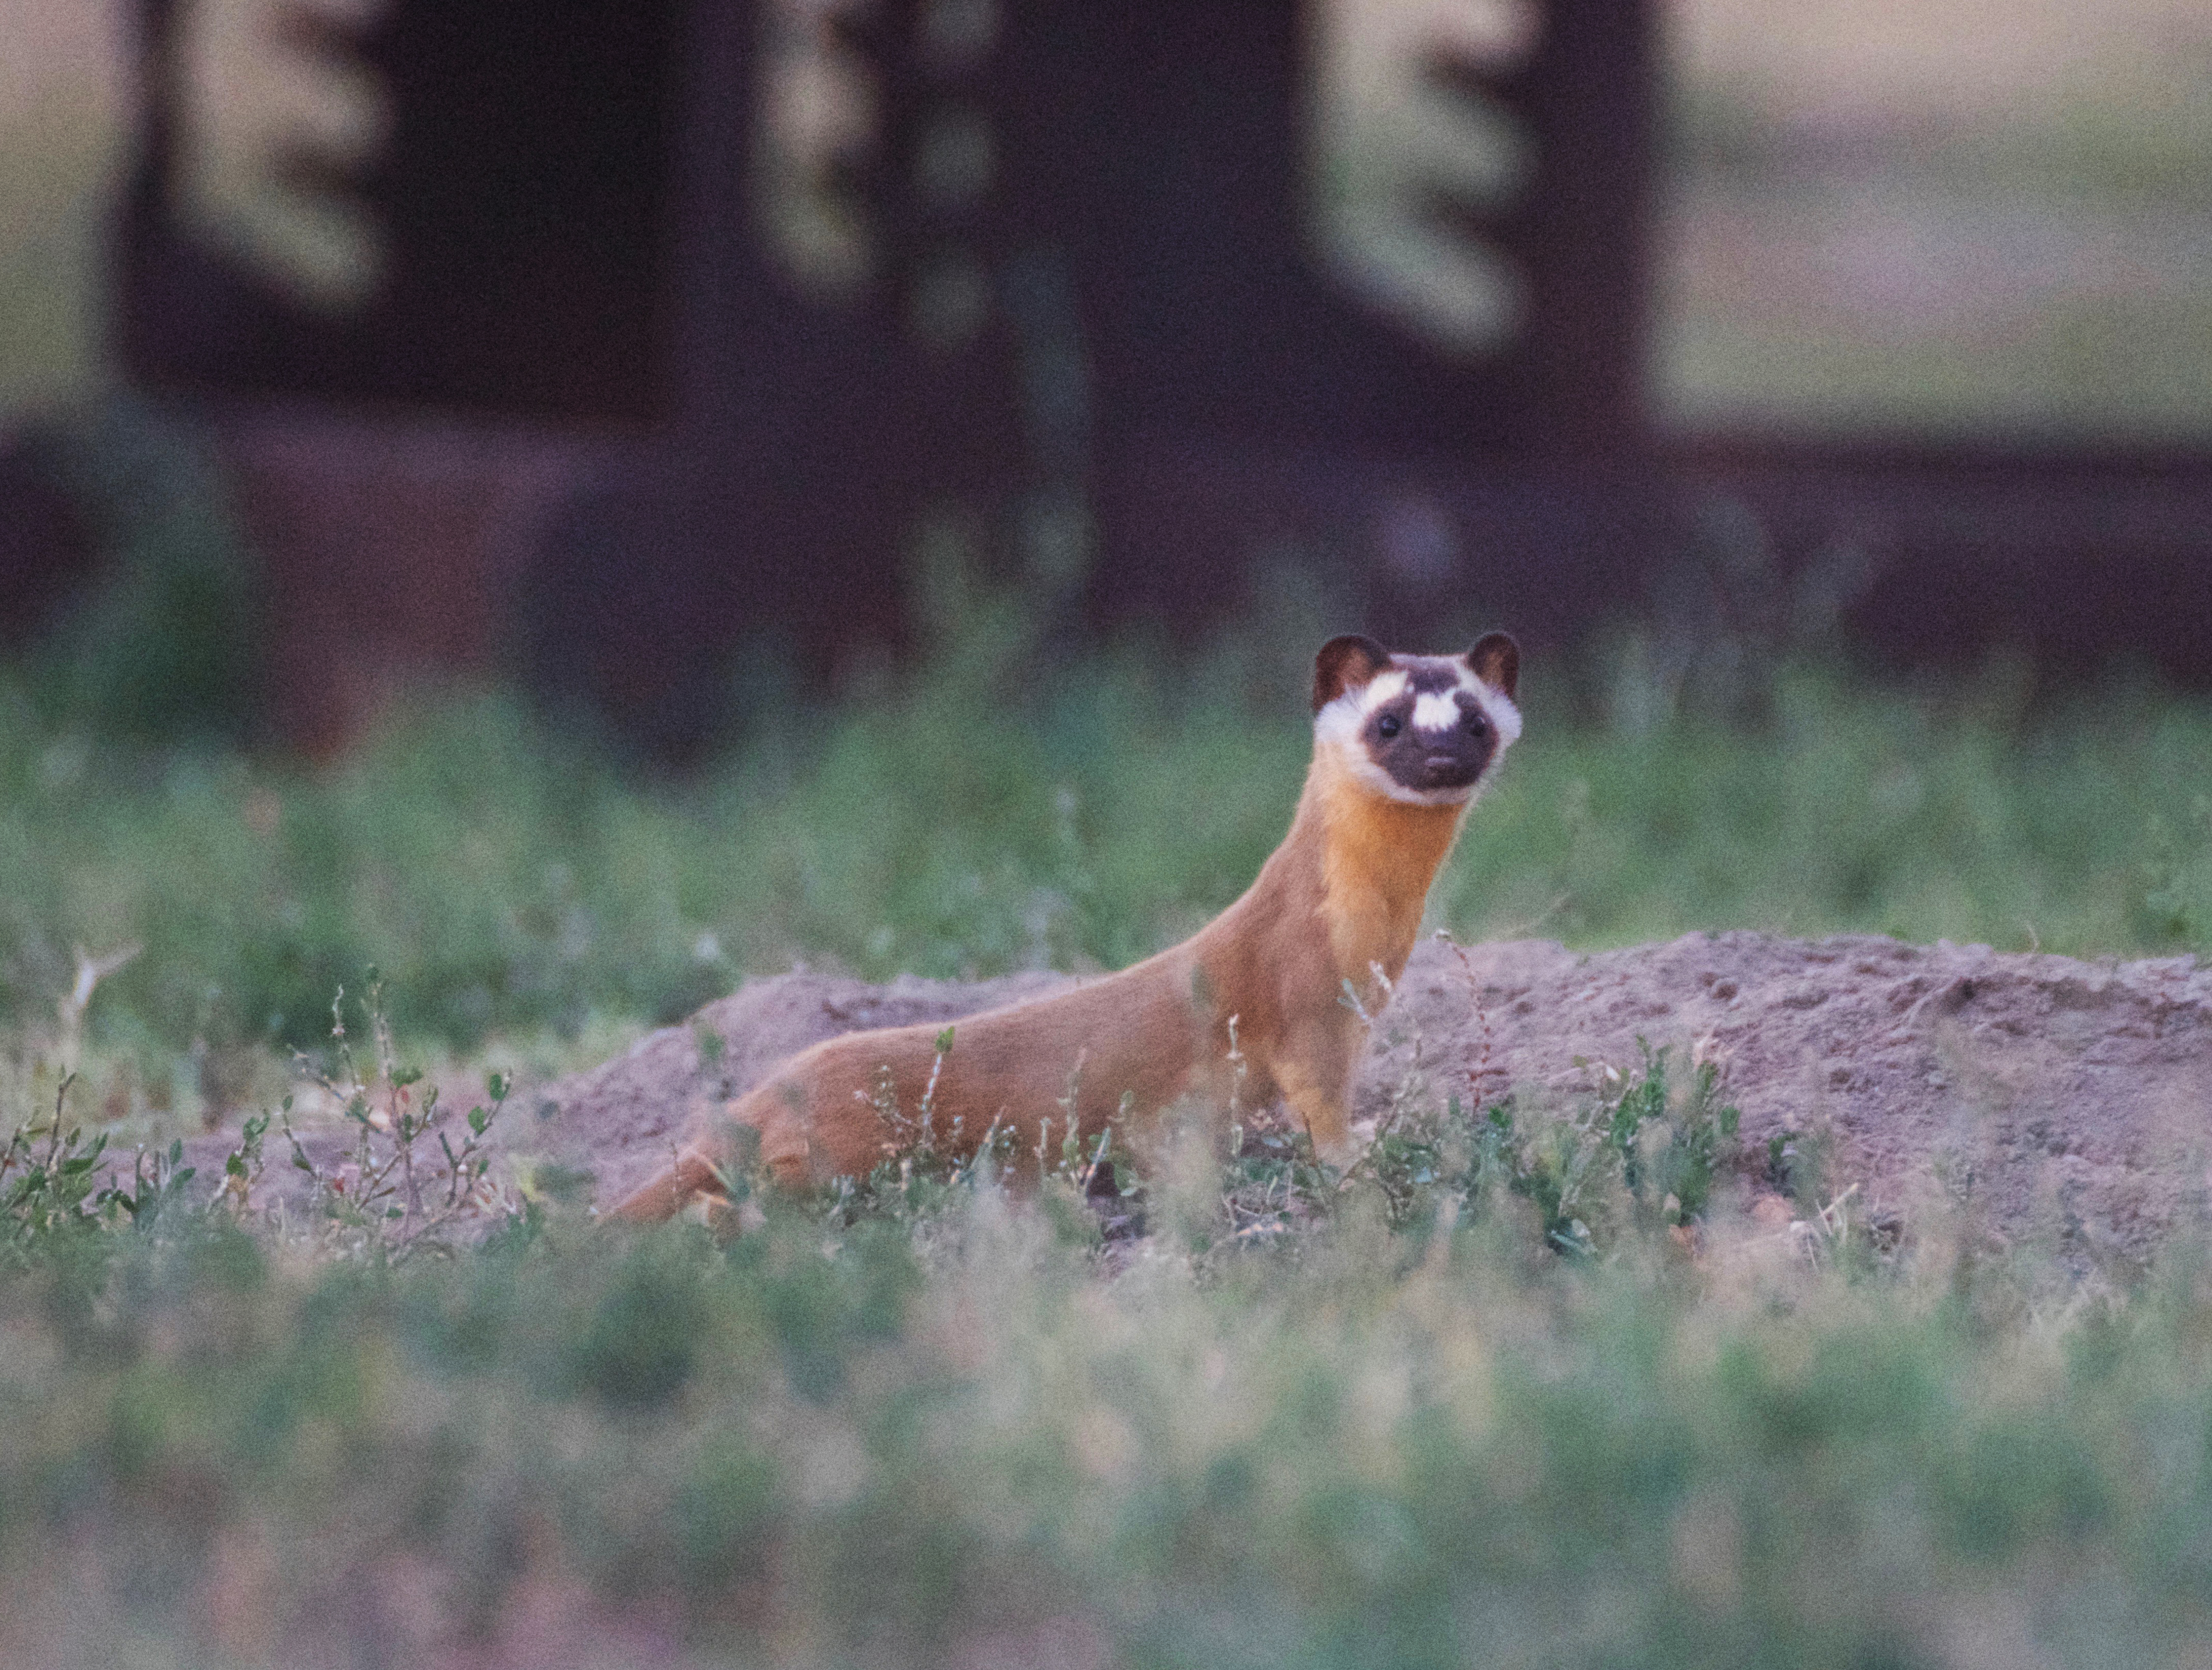 Long-tailed weasel pausing to turn and look at the camera